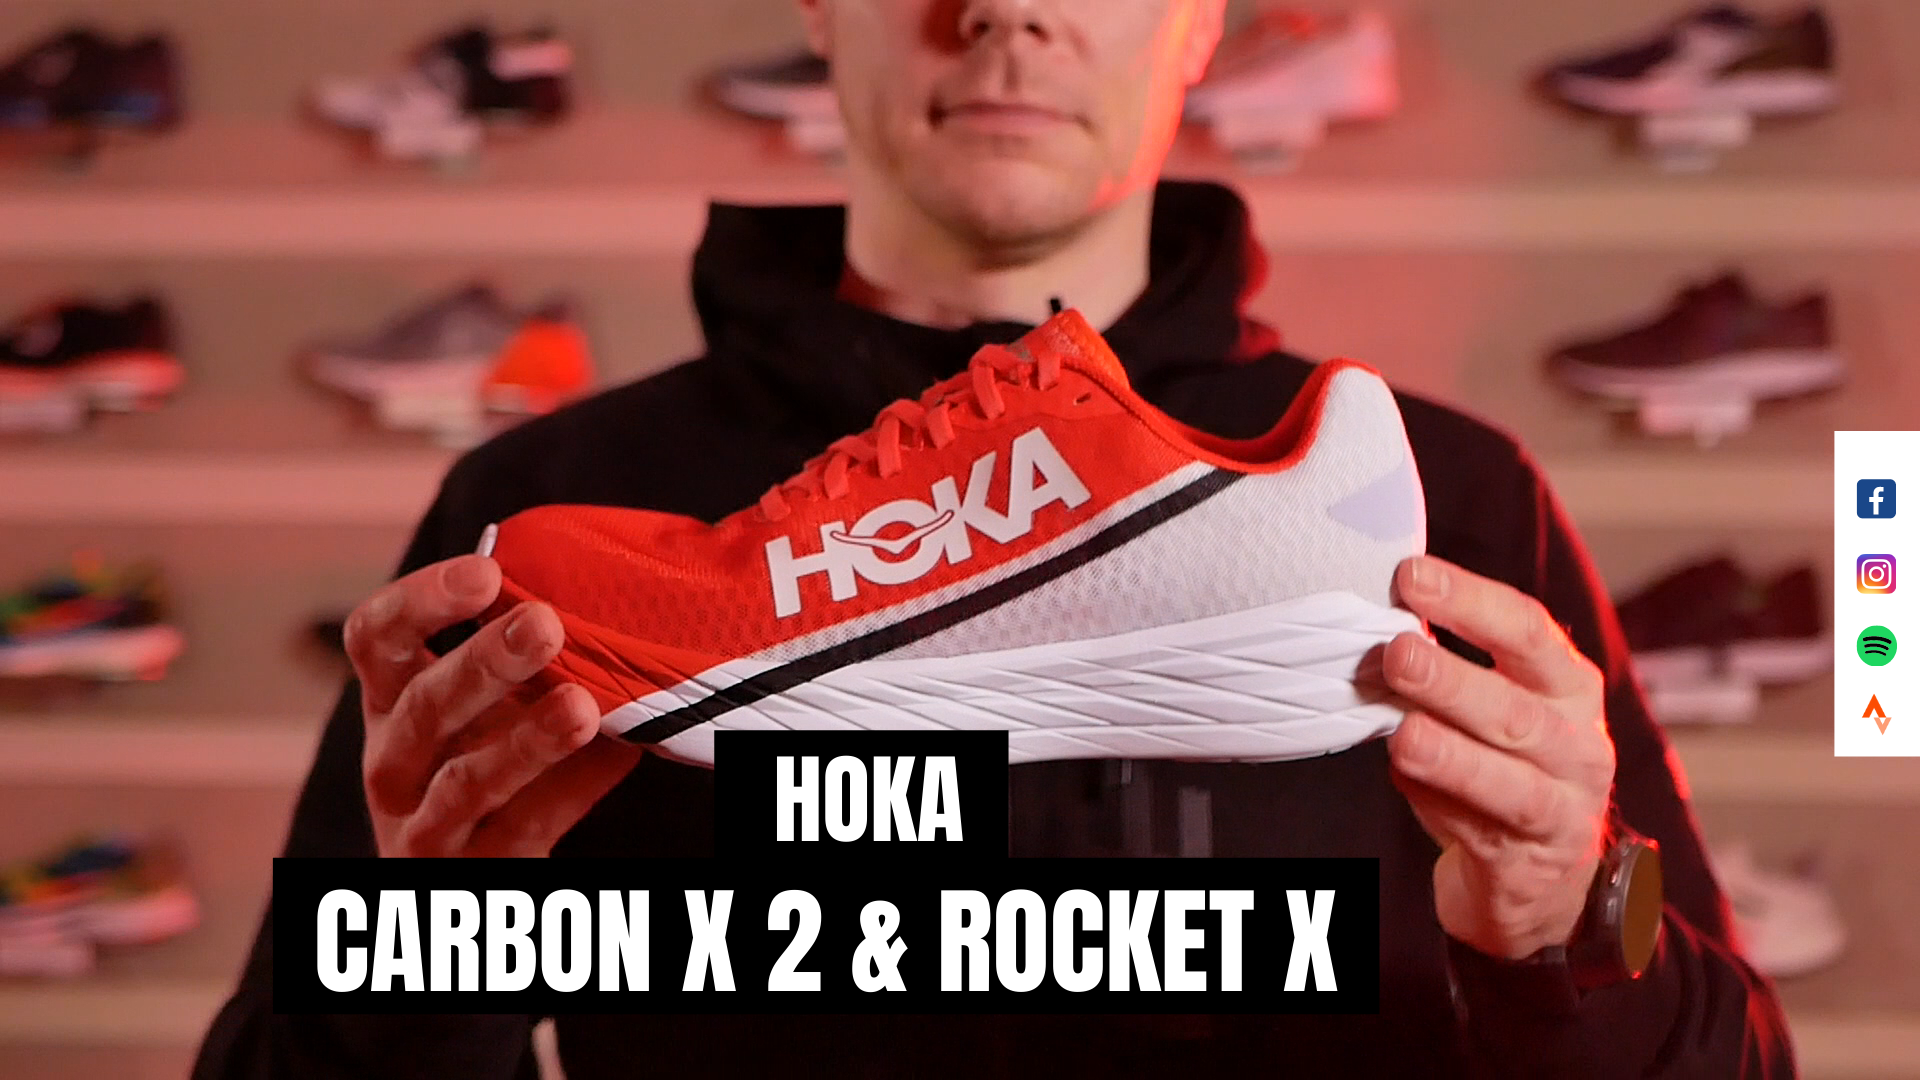 Review: Hoka Carbon X2 & Rocket X